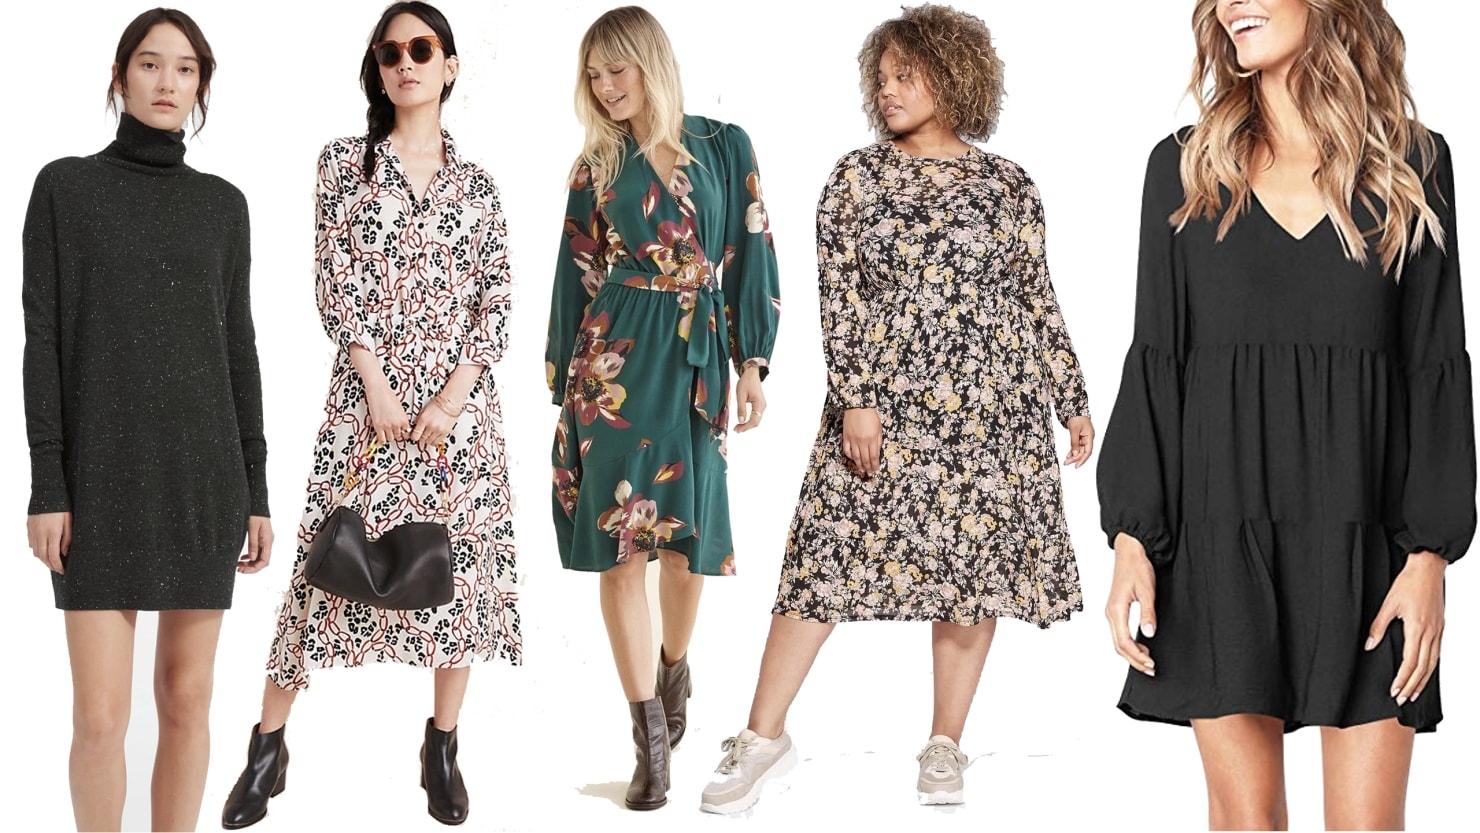 Scouted: The Start of Fall Is the Perfect Time to Wear a Long-Sleeve Dress — Here Are Some Top Options